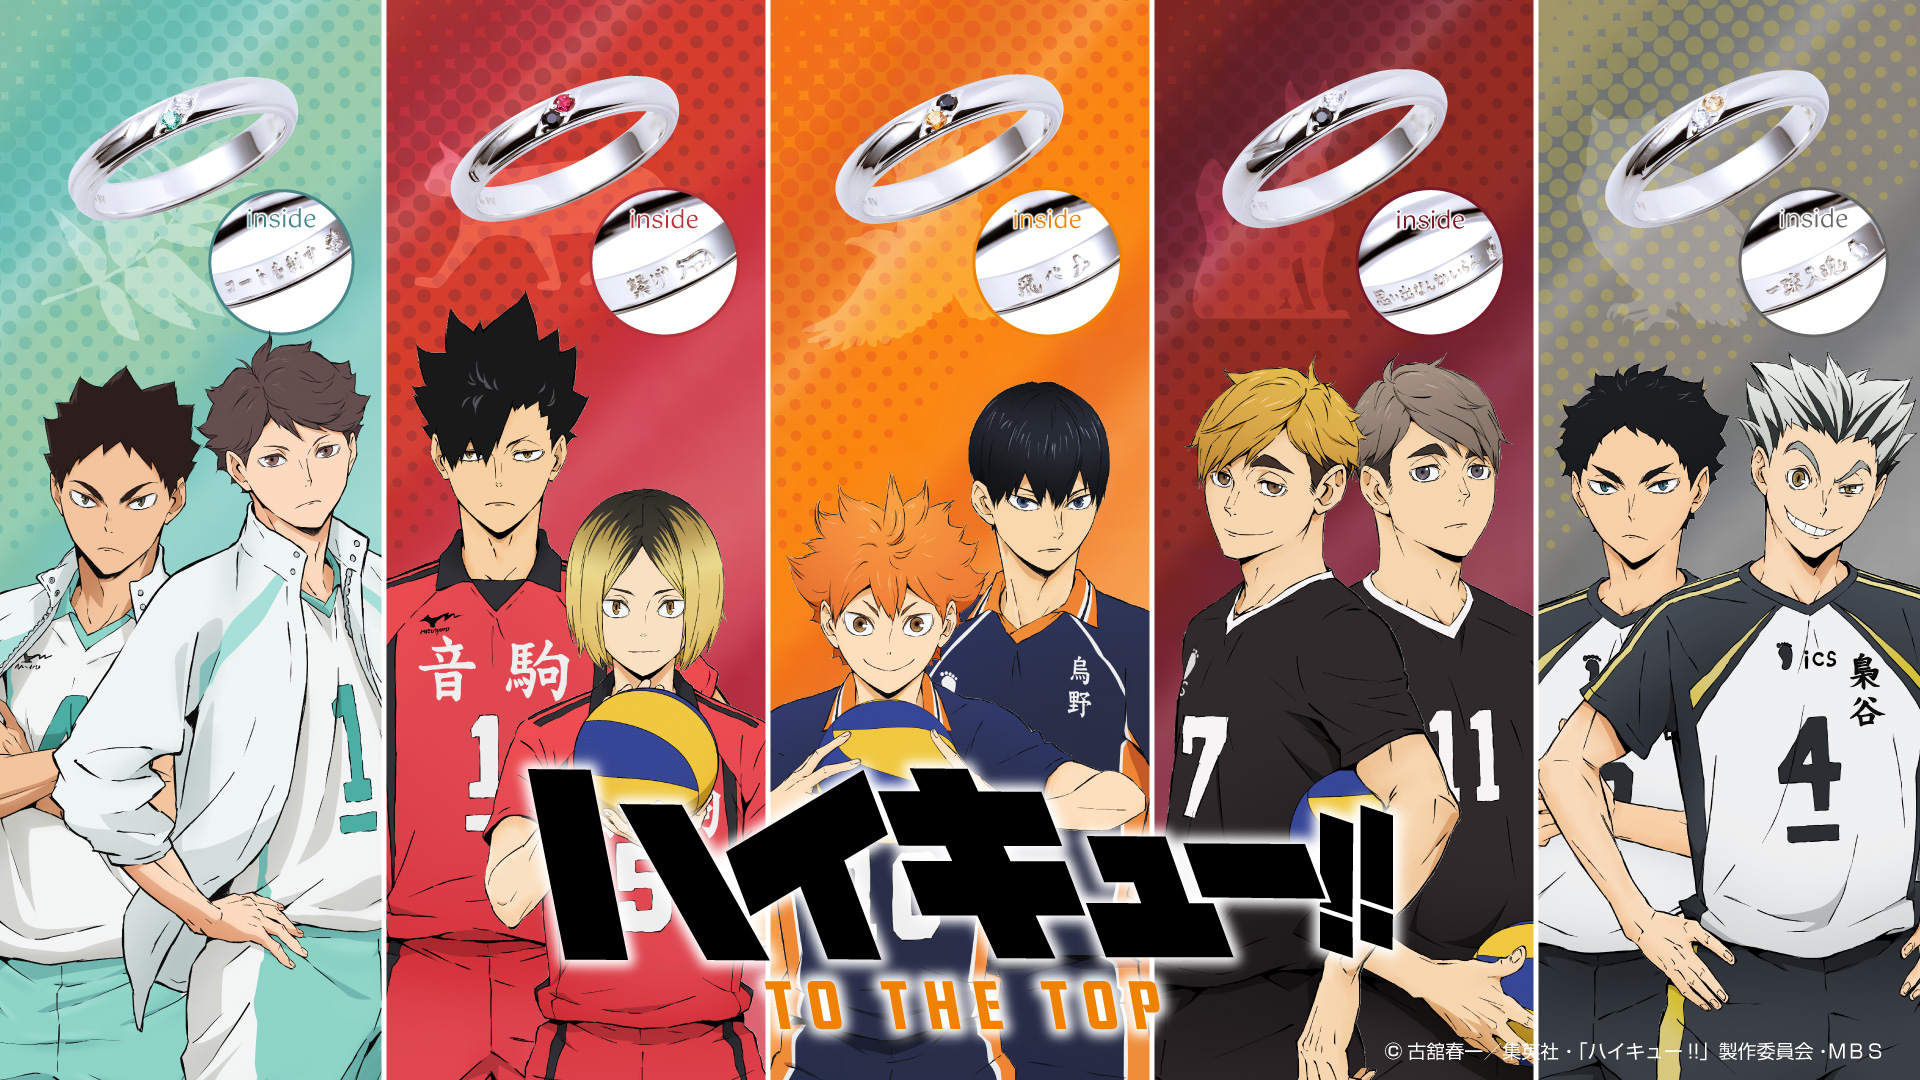 The ハイキュー top to